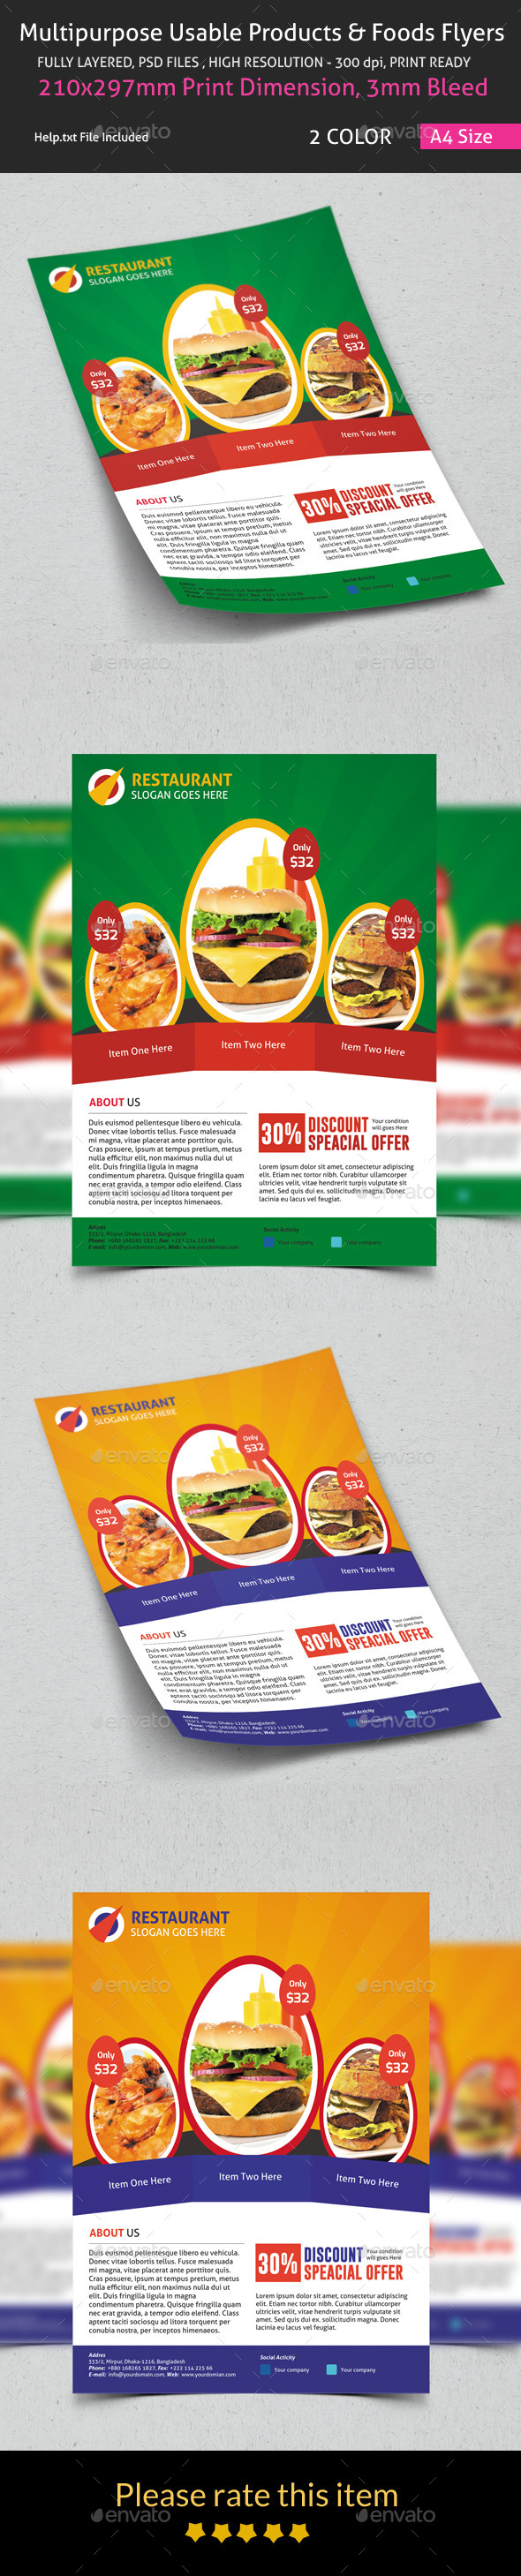 GraphicRiver Multipurpose Usable Products & Foods Flyers 8934327